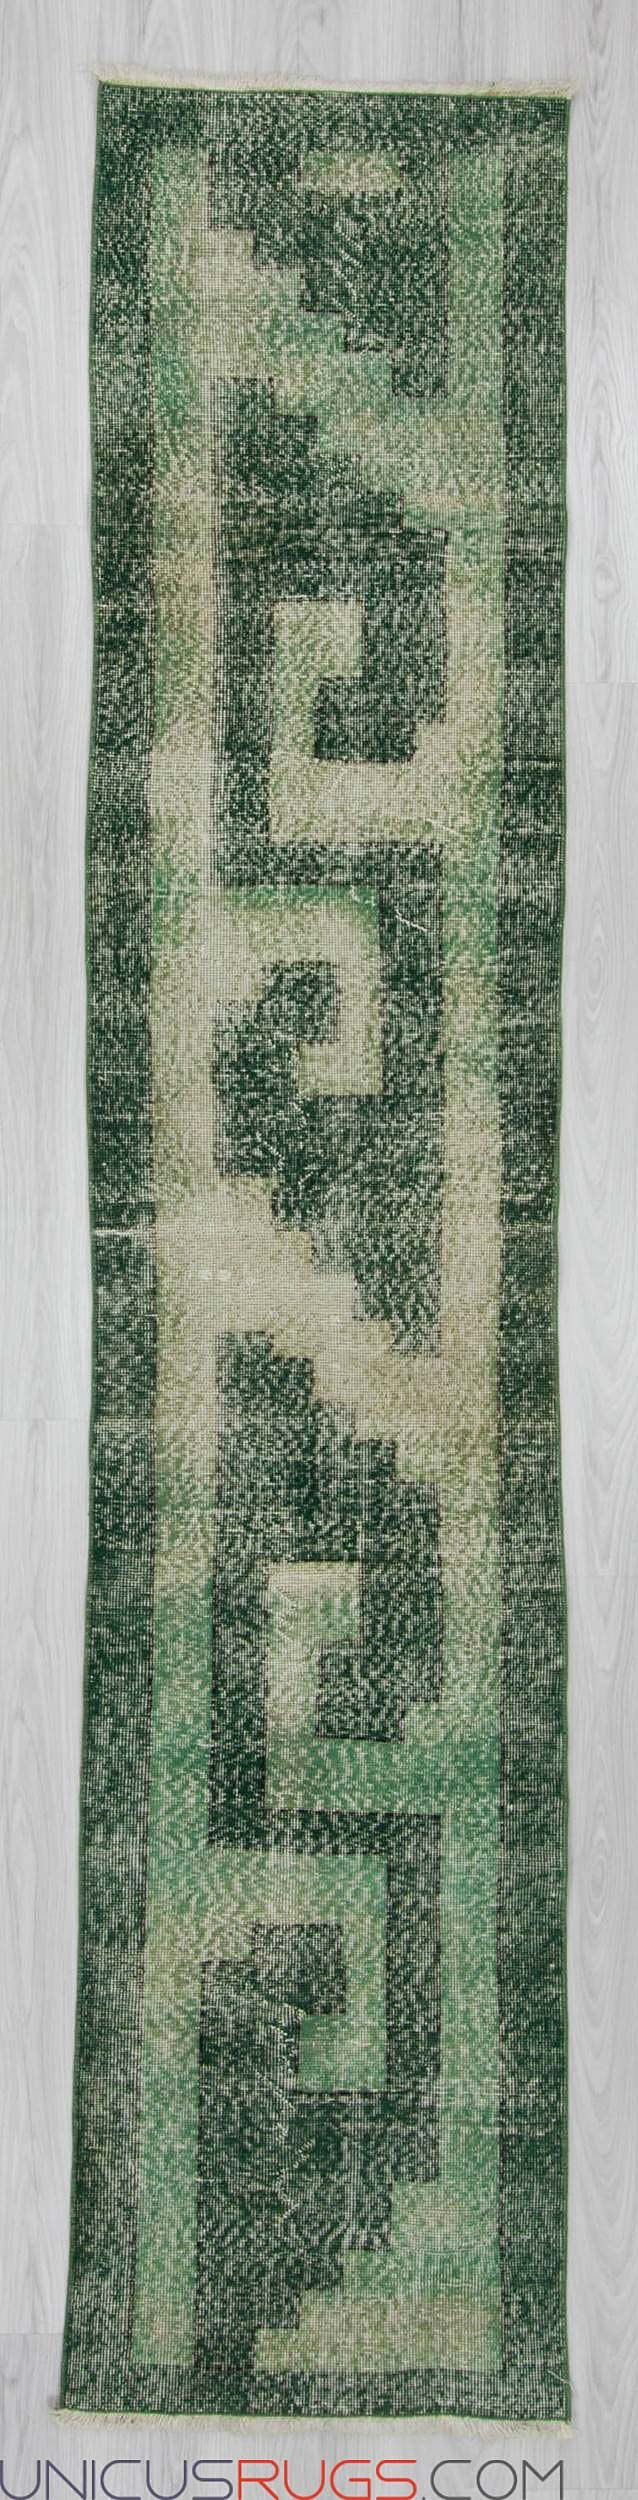 """Vintage modern distresed runner rug from Isparta region of Turkey. In very good condition. Approximately 45-55 years old Width: 2' 2"""" - Length: 10' 3"""" RUNNERS"""